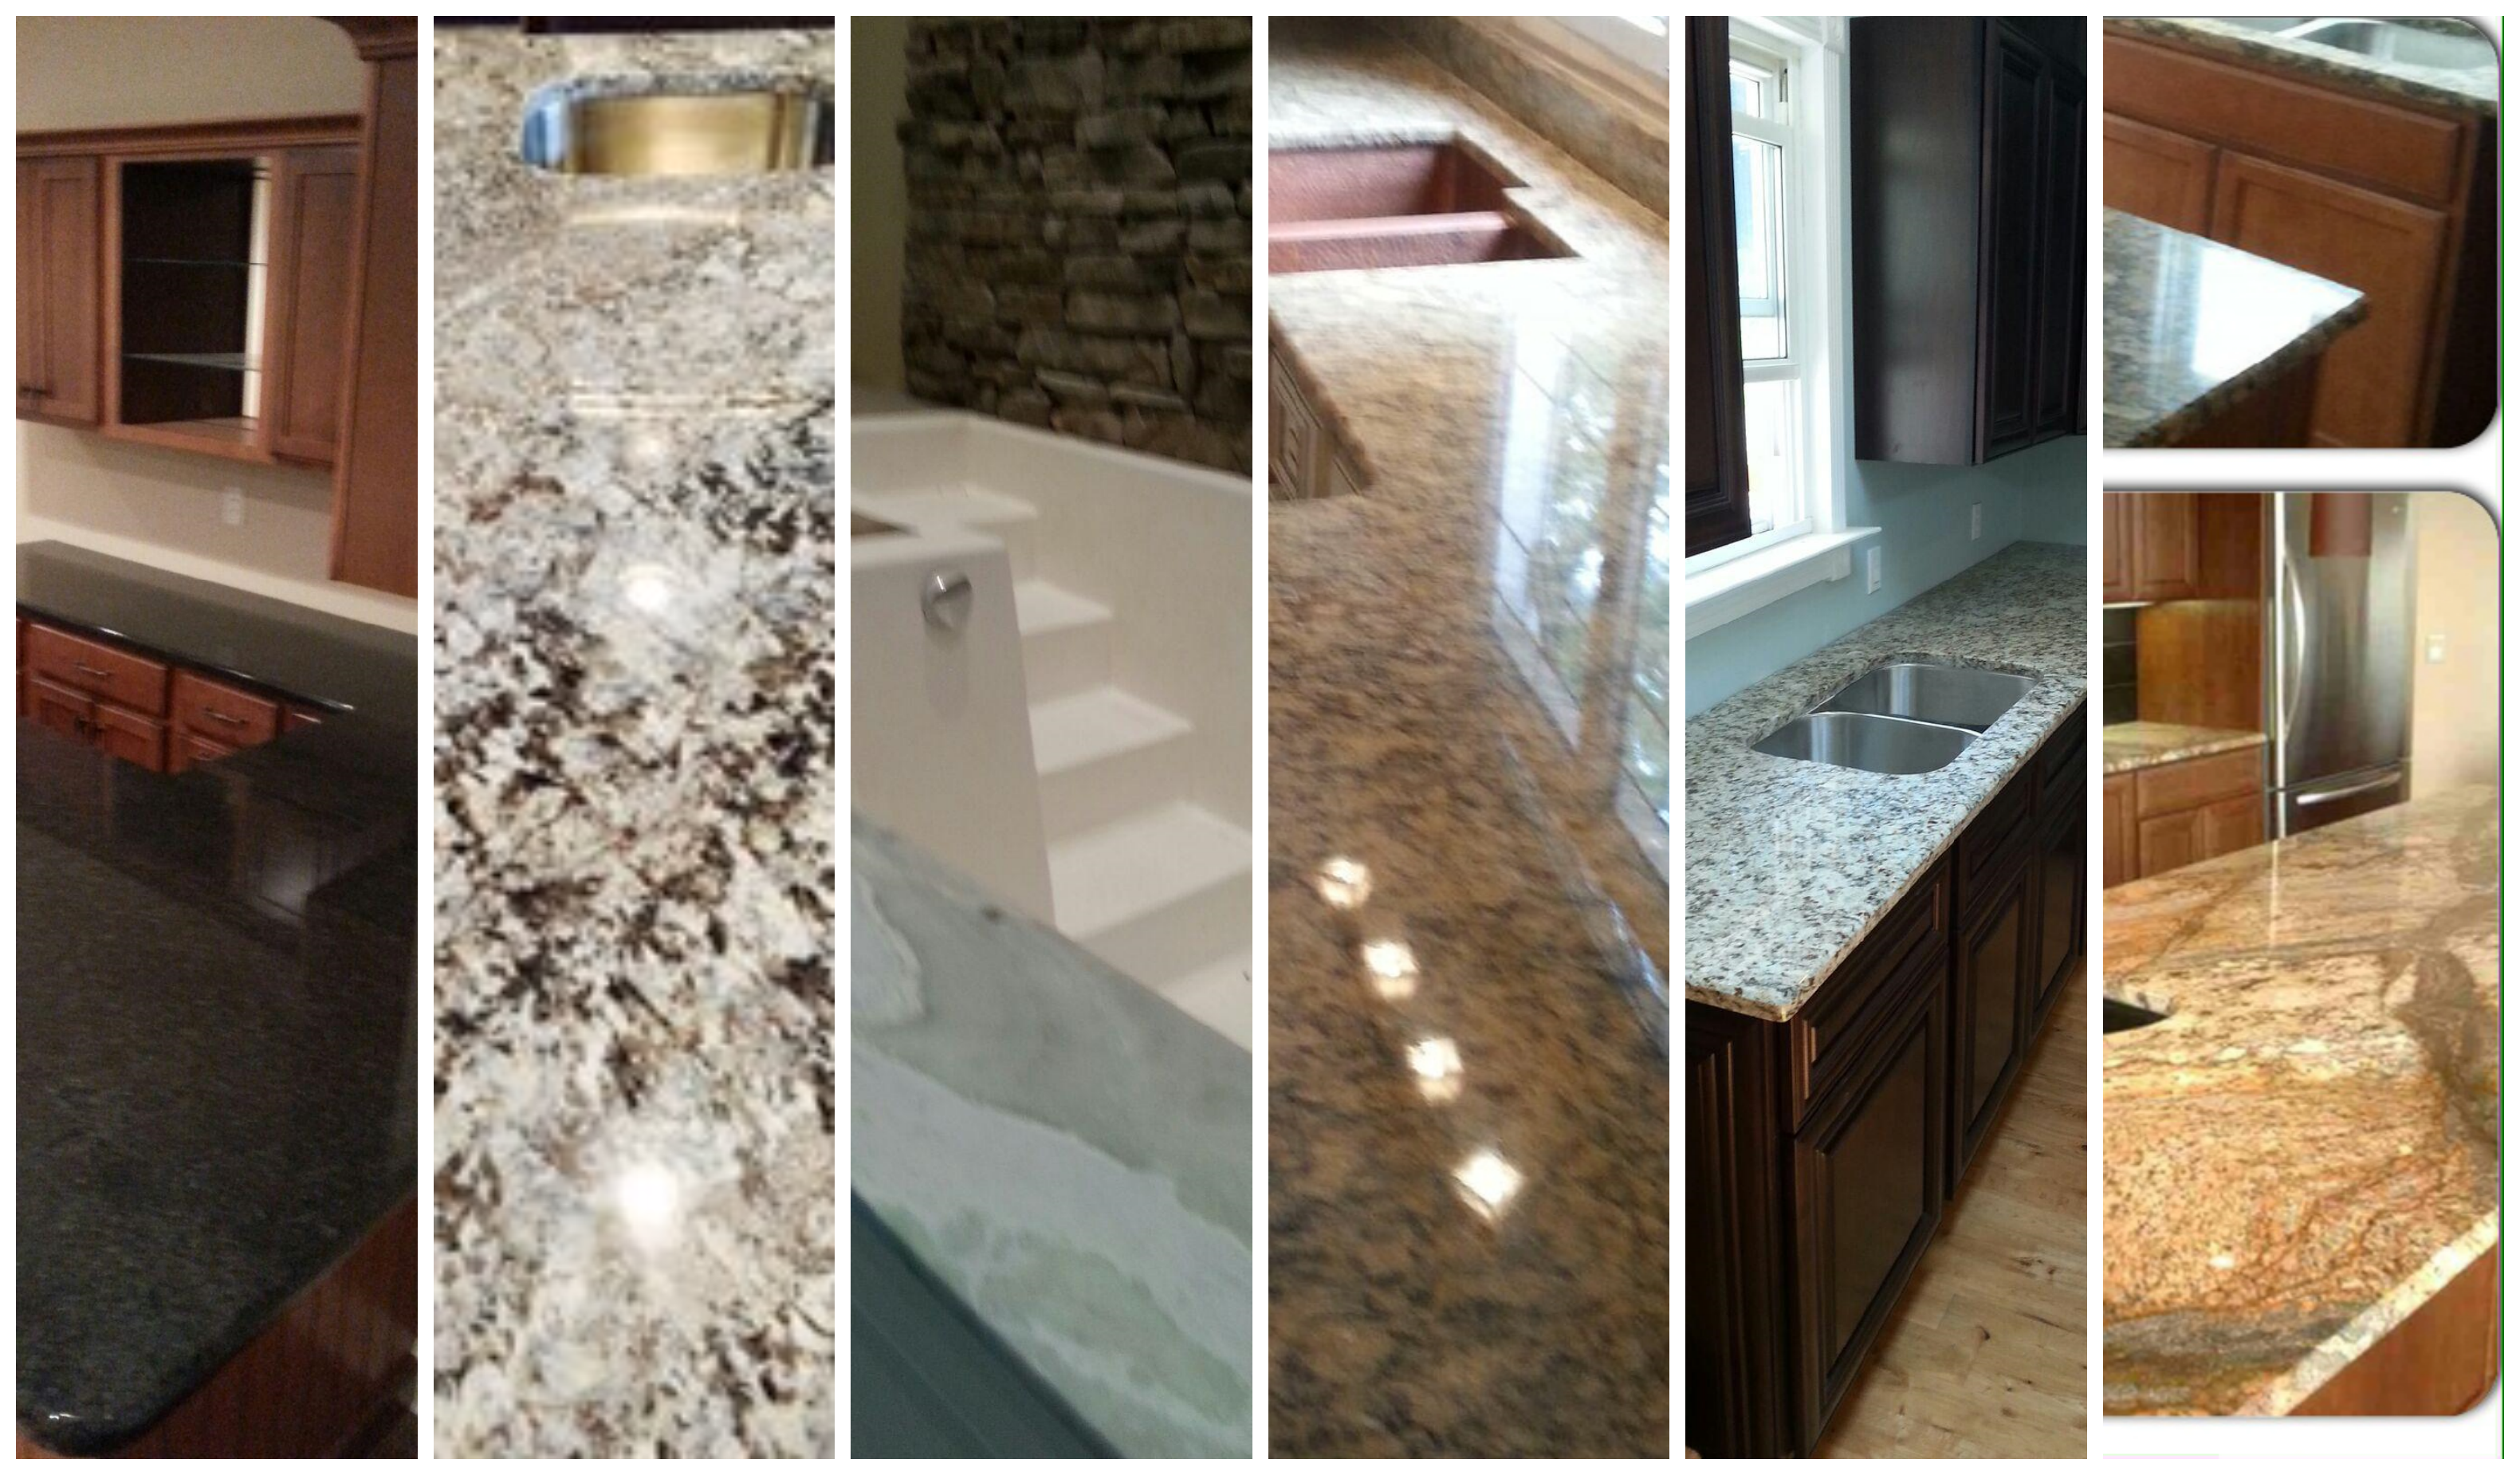 ALL-IN GRANITE Granite Marble Quartz.png English: Kitchen & Bathroom Remodeling Granite Marble Quartz Date 16 September 2014 Source Own work Author